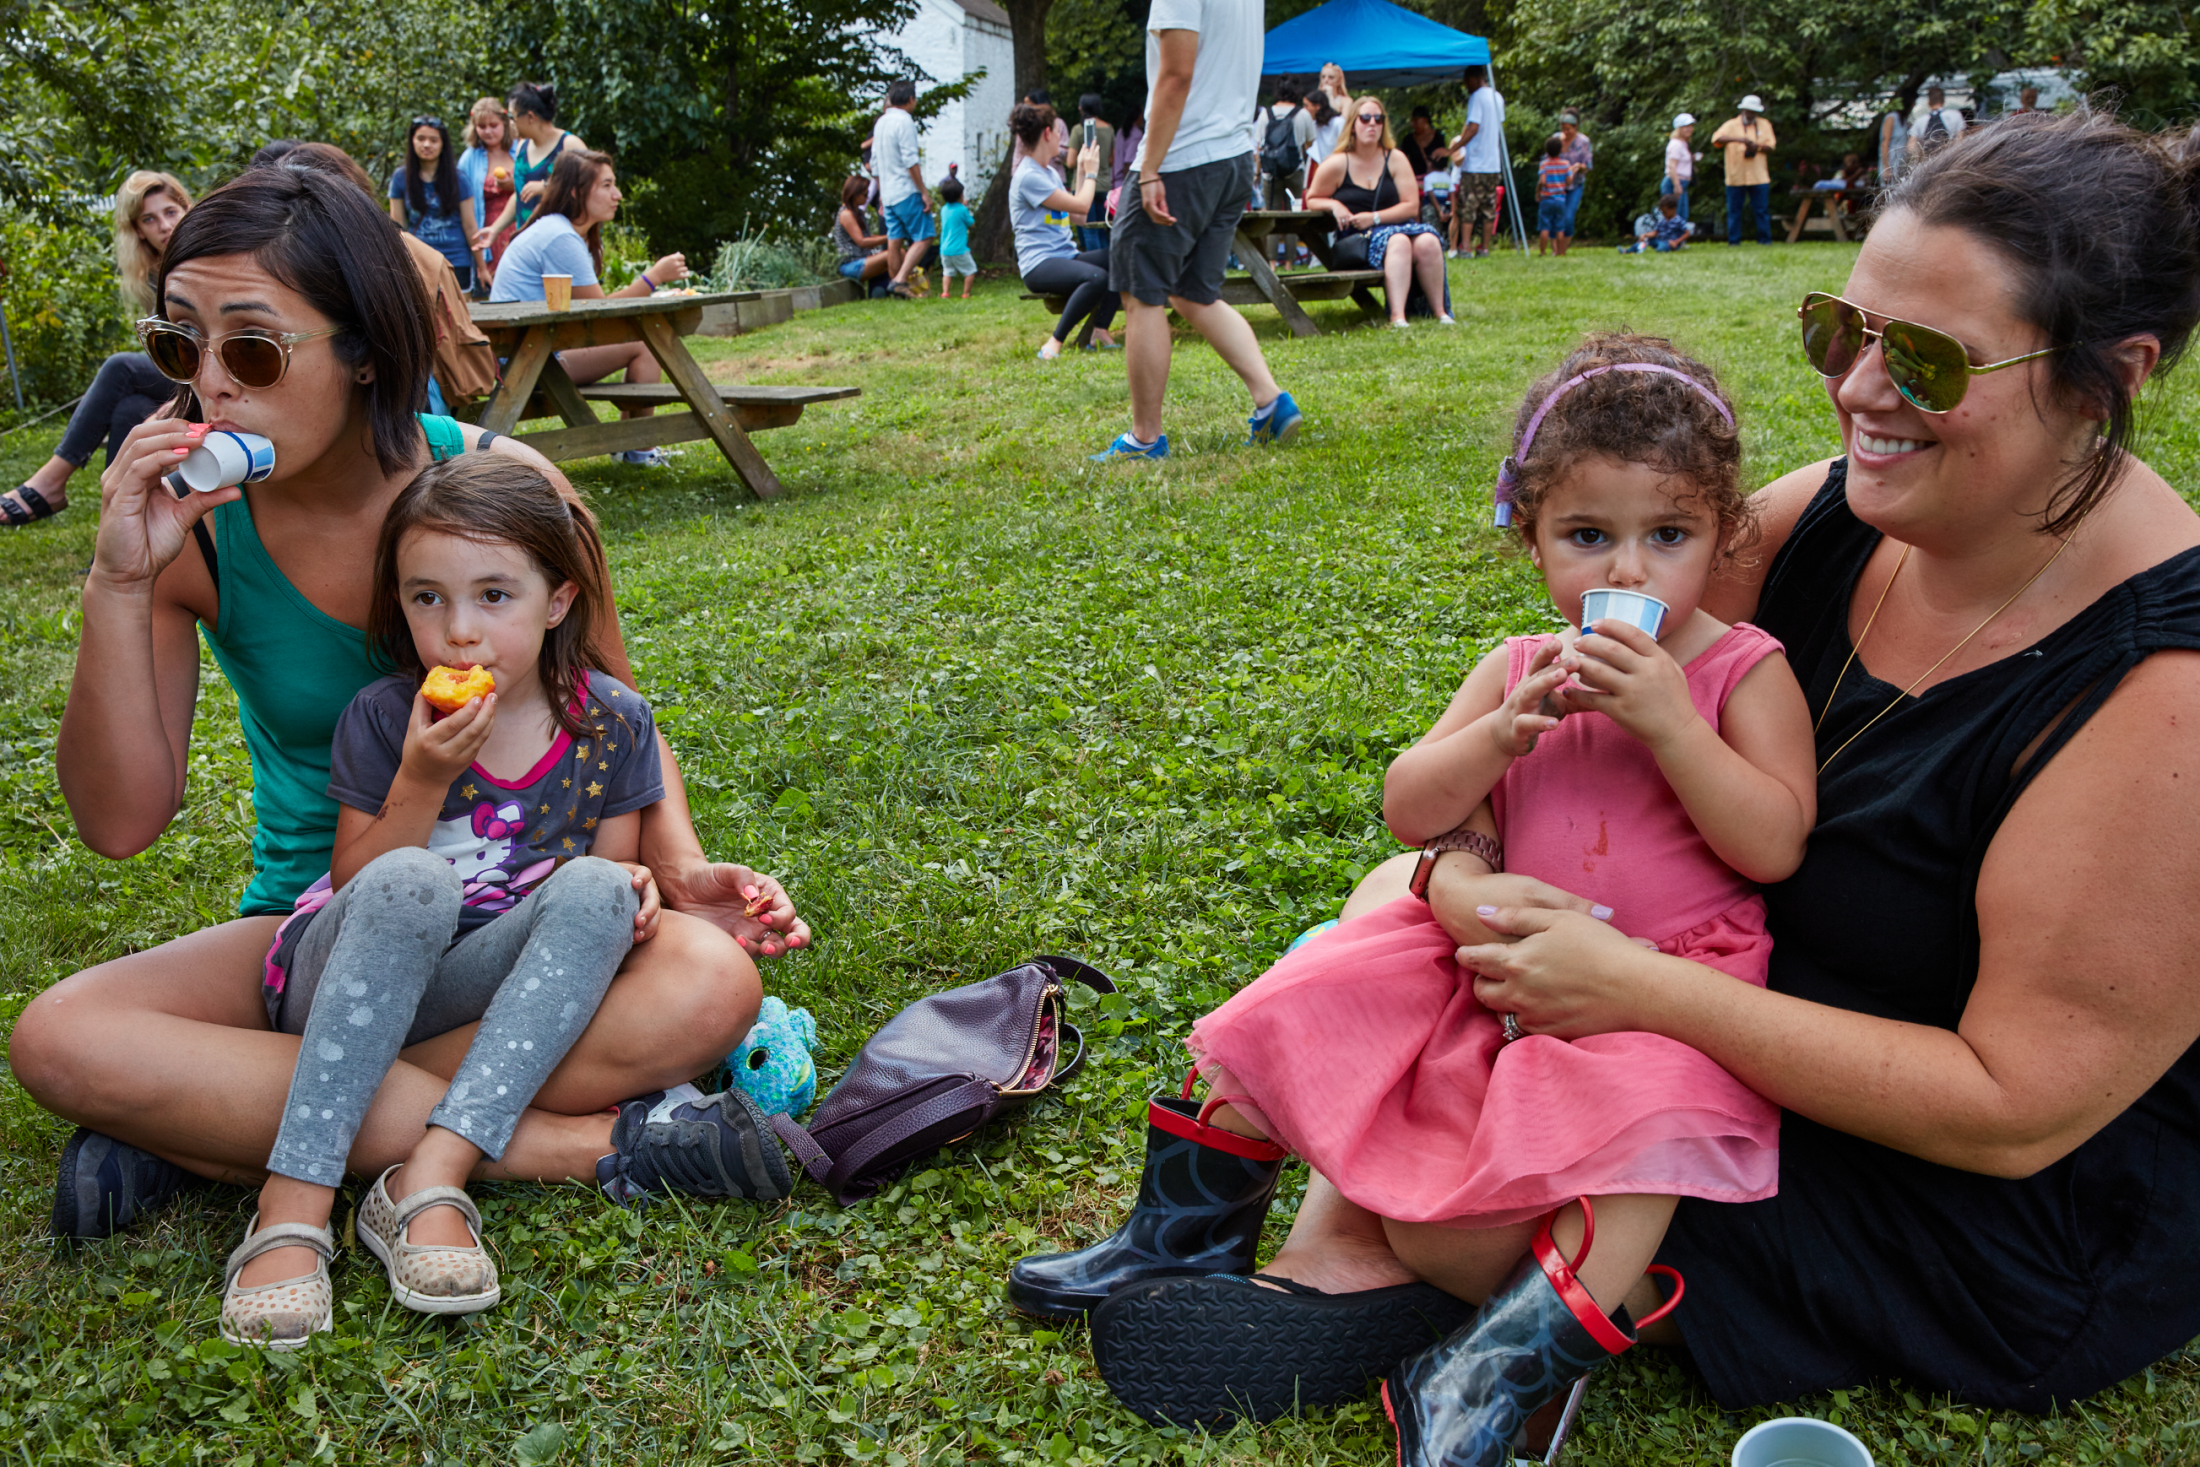 Art and Documentary Photography - Loading 04-08-18_WoodfordMansion-PeachFestival_377.png